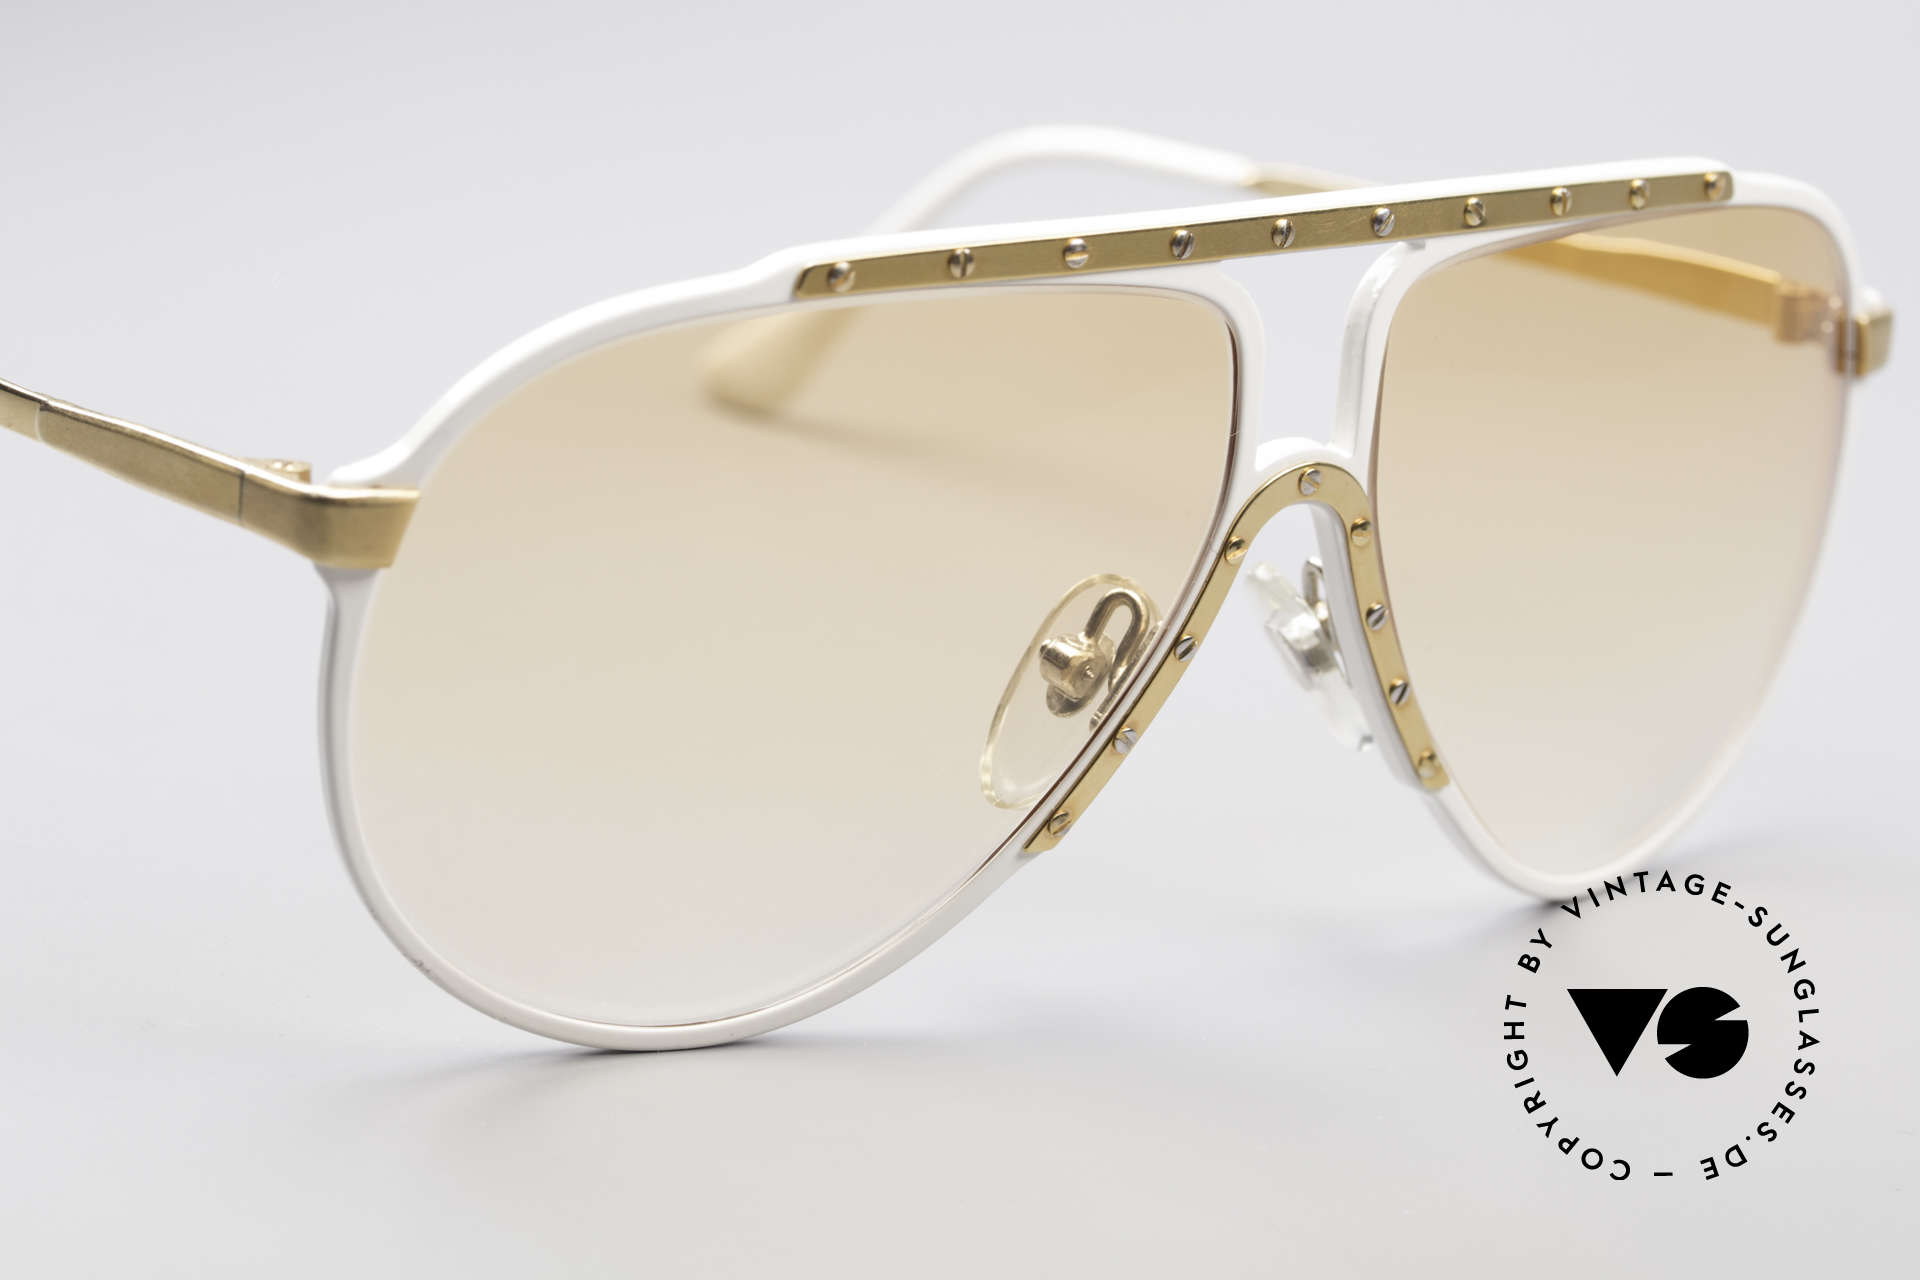 Alpina M1 Iconic 80's Sunglasses, one of the most wanted vintage shades, WORLDWIDE, Made for Men and Women